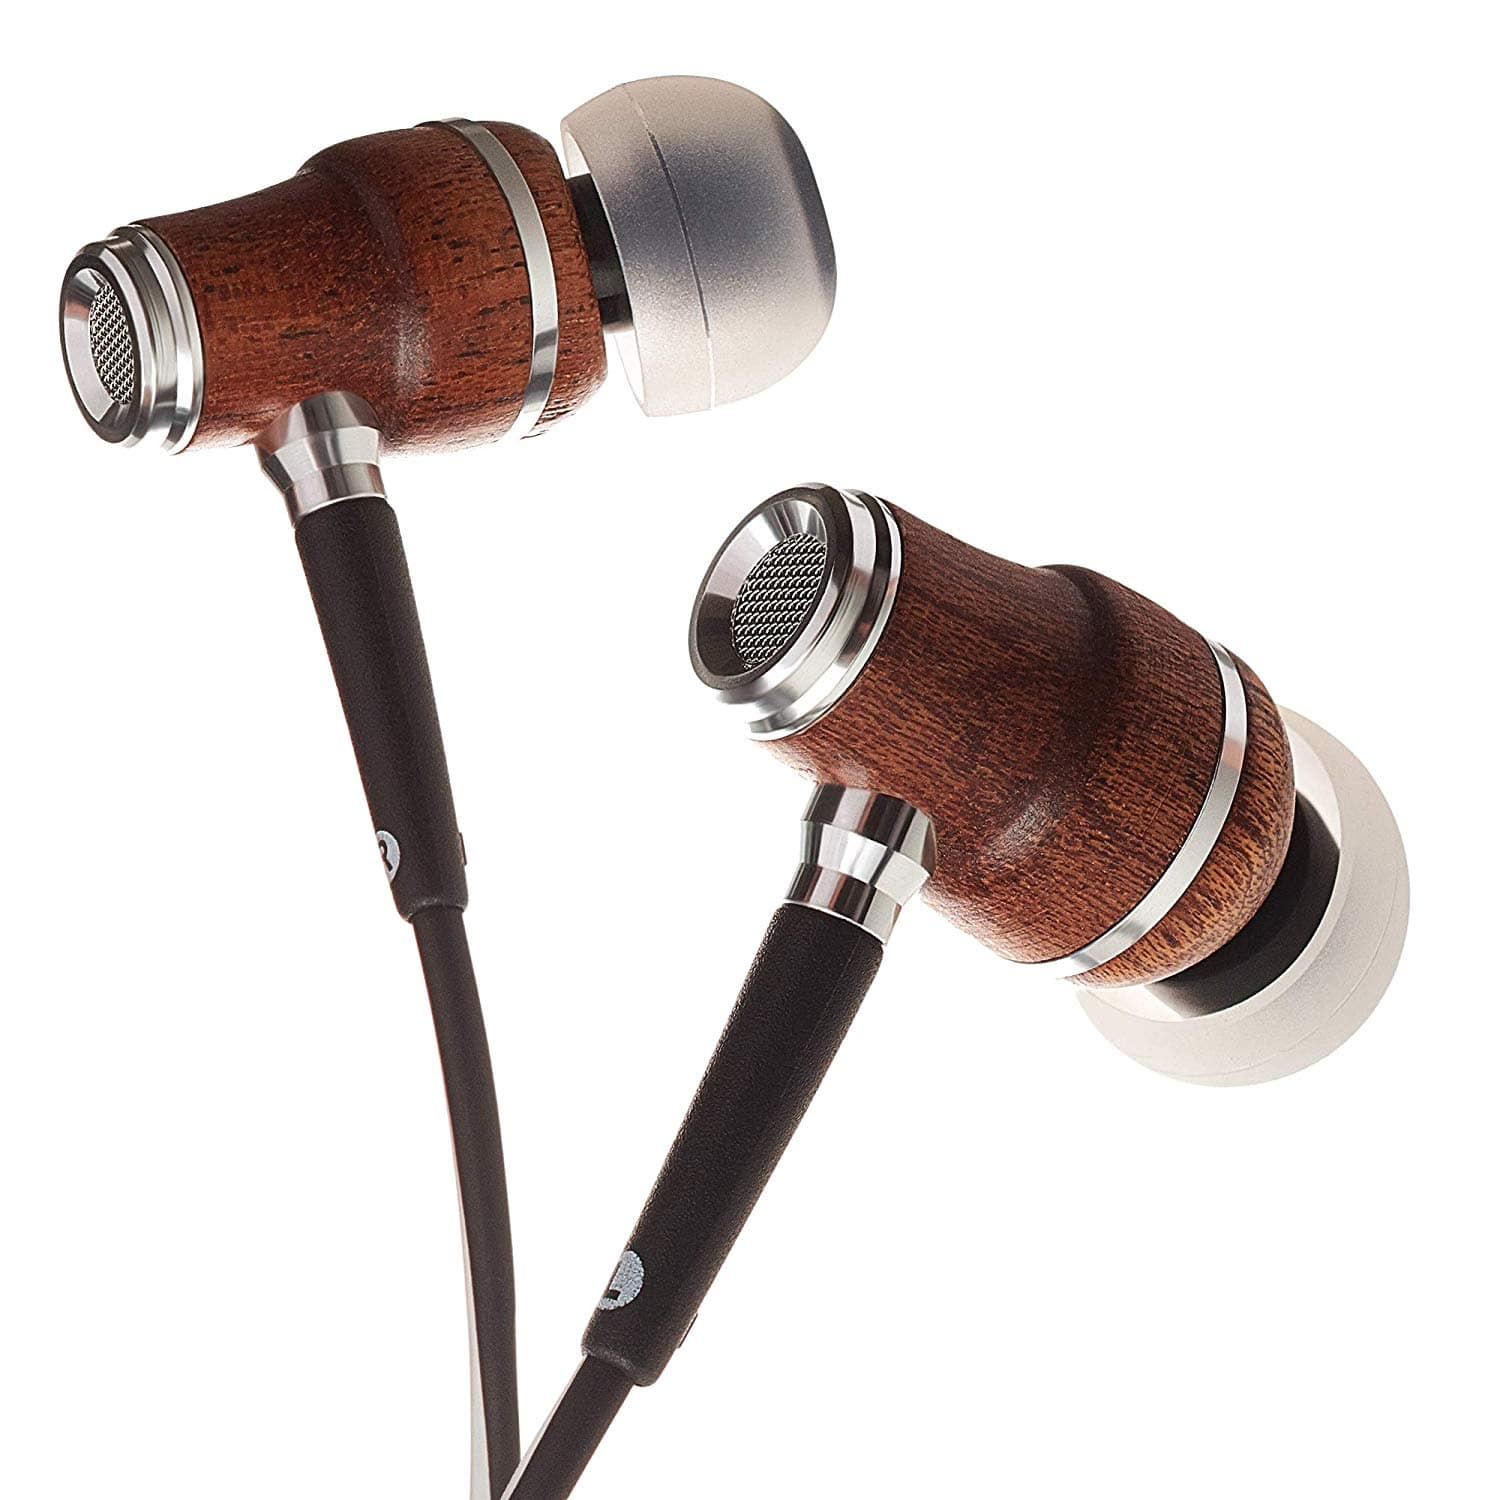 fd68338e1dec25 Symphonized NRG X Wood In Ear Noise Isolating Earbuds with Angle Fit Ear  Tips, Mic and Volume (Black/White) for $11.49 + FREE SHIPPING with PRIME